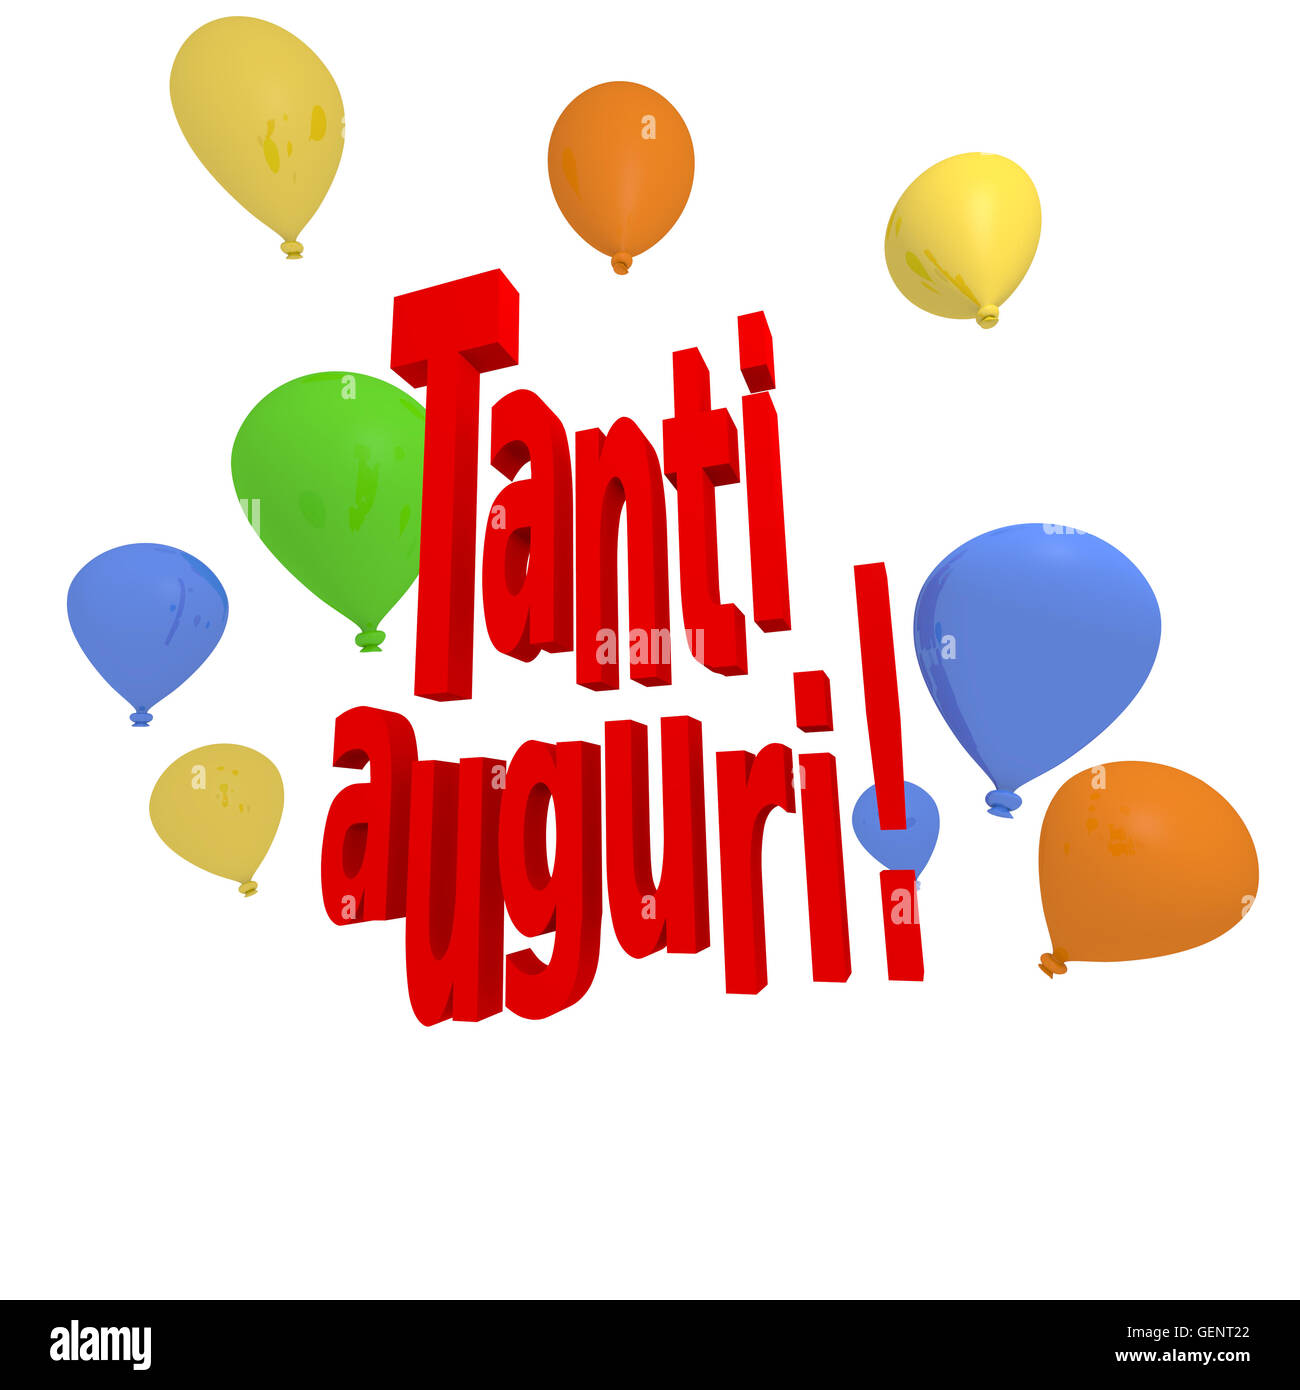 "Favoloso Italian congratulation concept image, ""Tanti auguri"" with colorful  AE42"